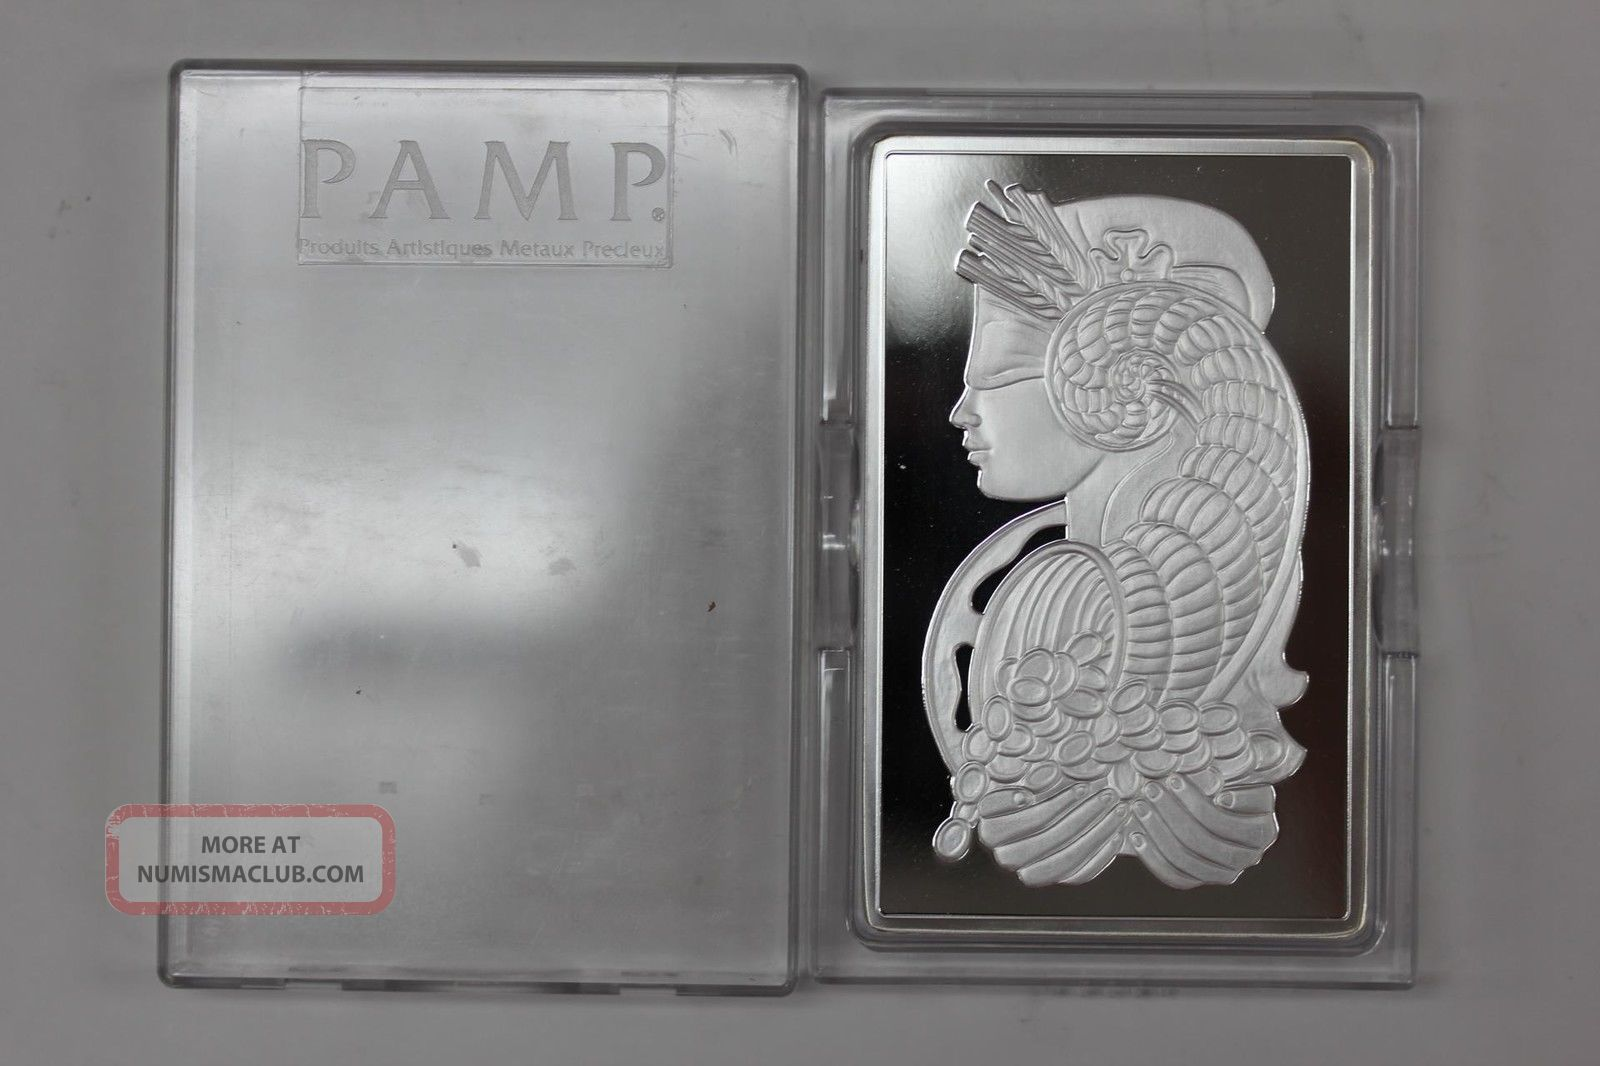 10 Oz Ounce Pamp Suisse 999 Fine Silver Bar Fortuna